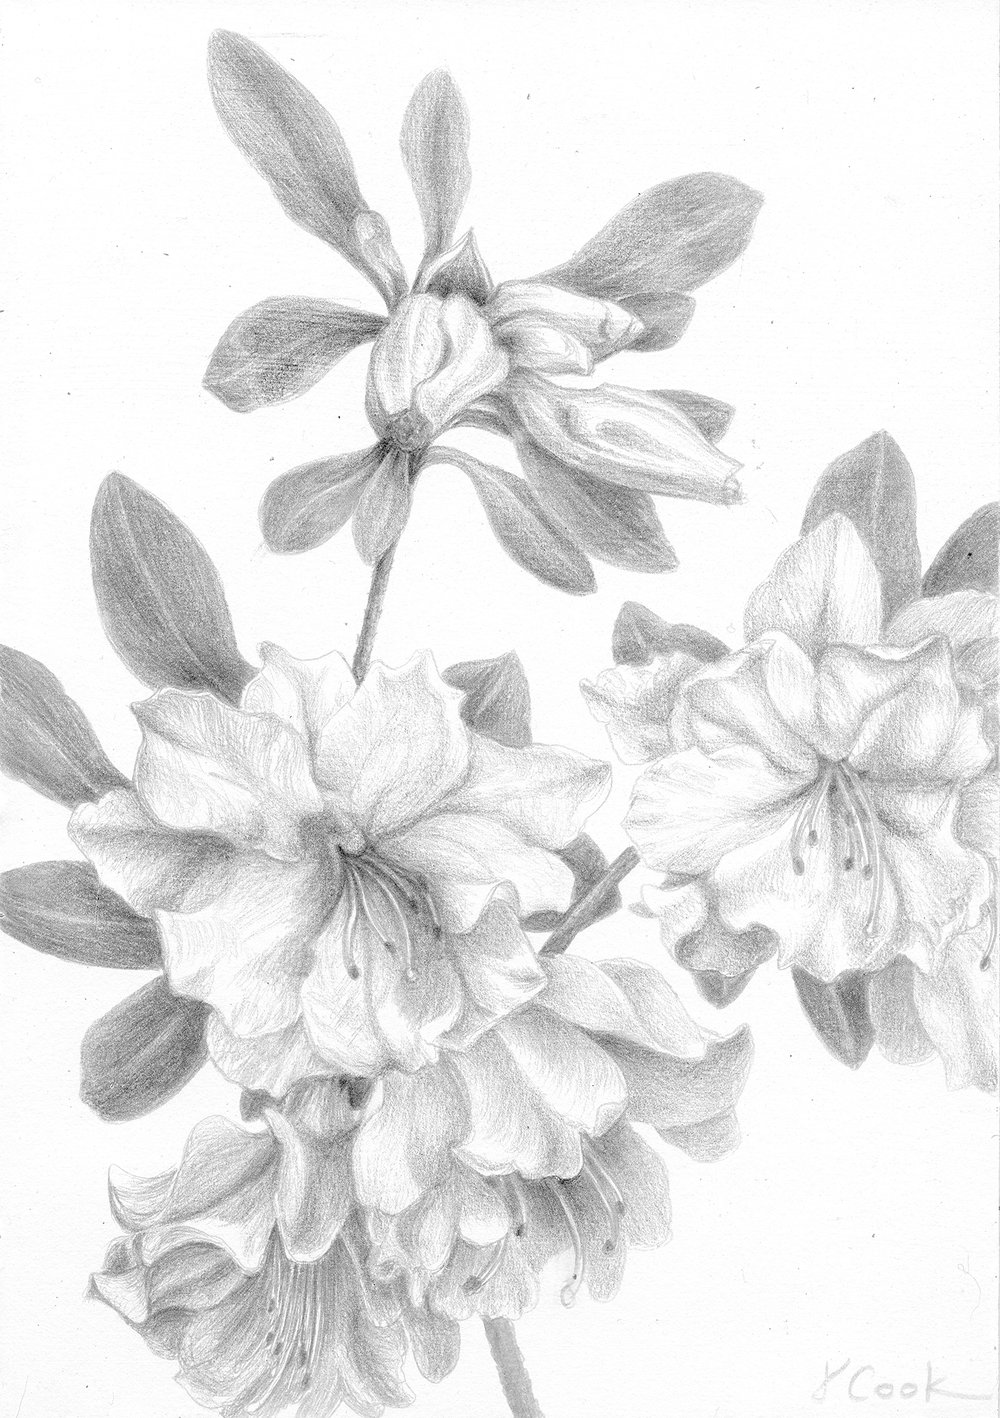 Azaleas in March, silverpoint, Jeannine Cook artist, Private collection